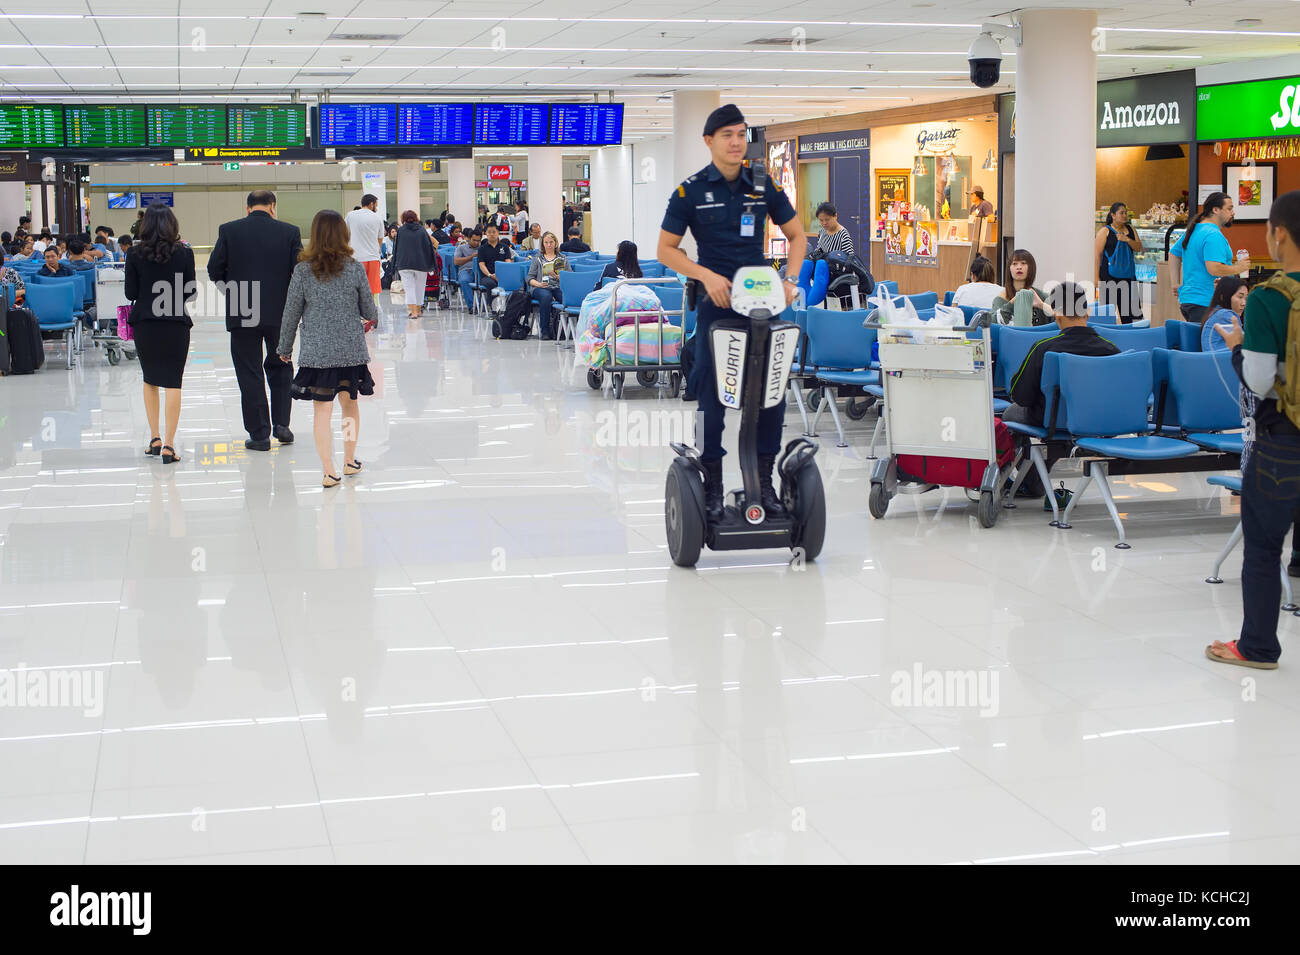 BANGKOK, THAILAND - JANUARY 13, 2017: Passengers at waiting room in the Don Mueang airport. The airport is considered - Stock Image